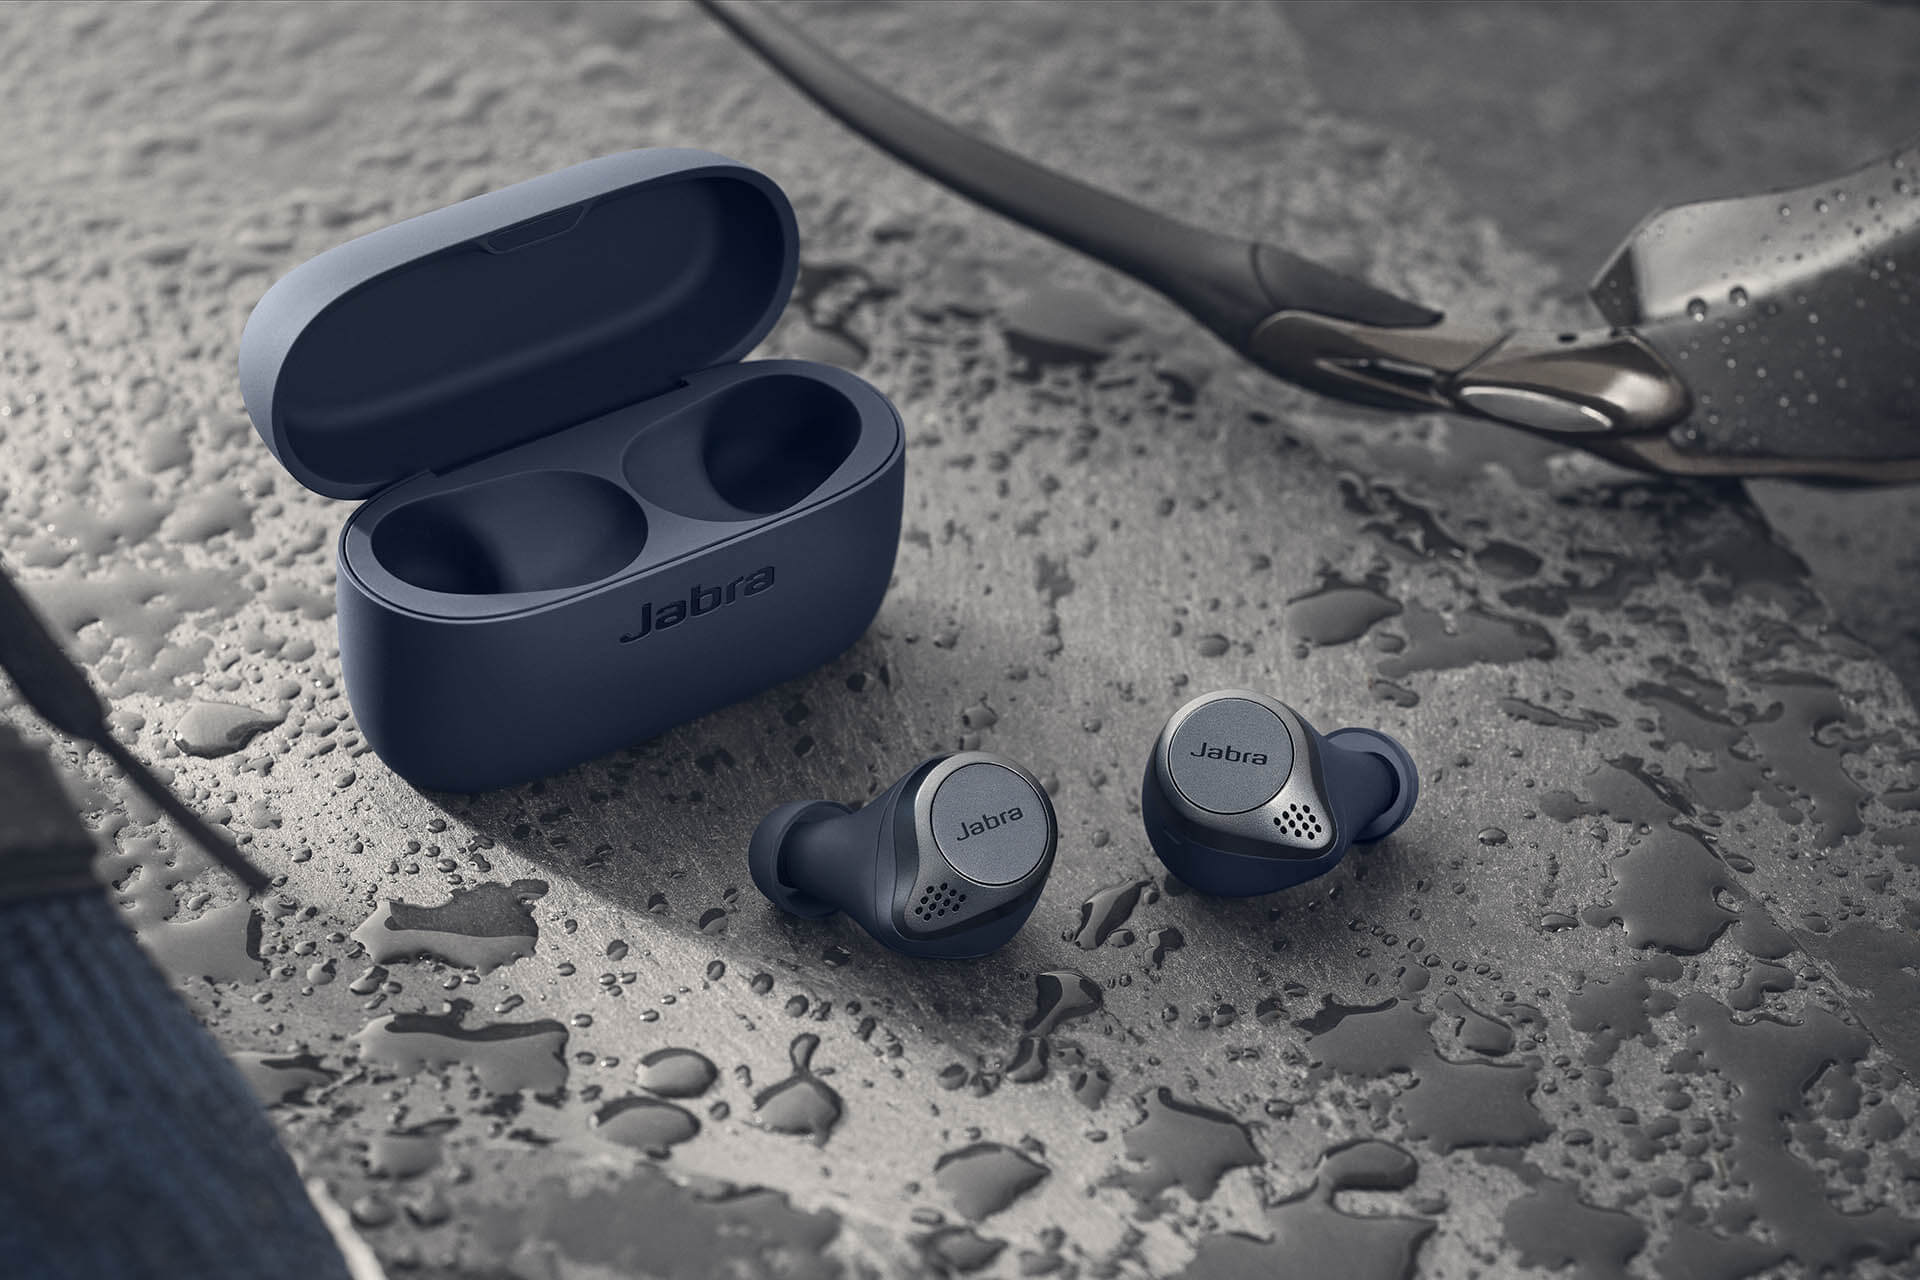 True Wireless Earbuds For Running Exercise Sport Jabra Elite Active 75t